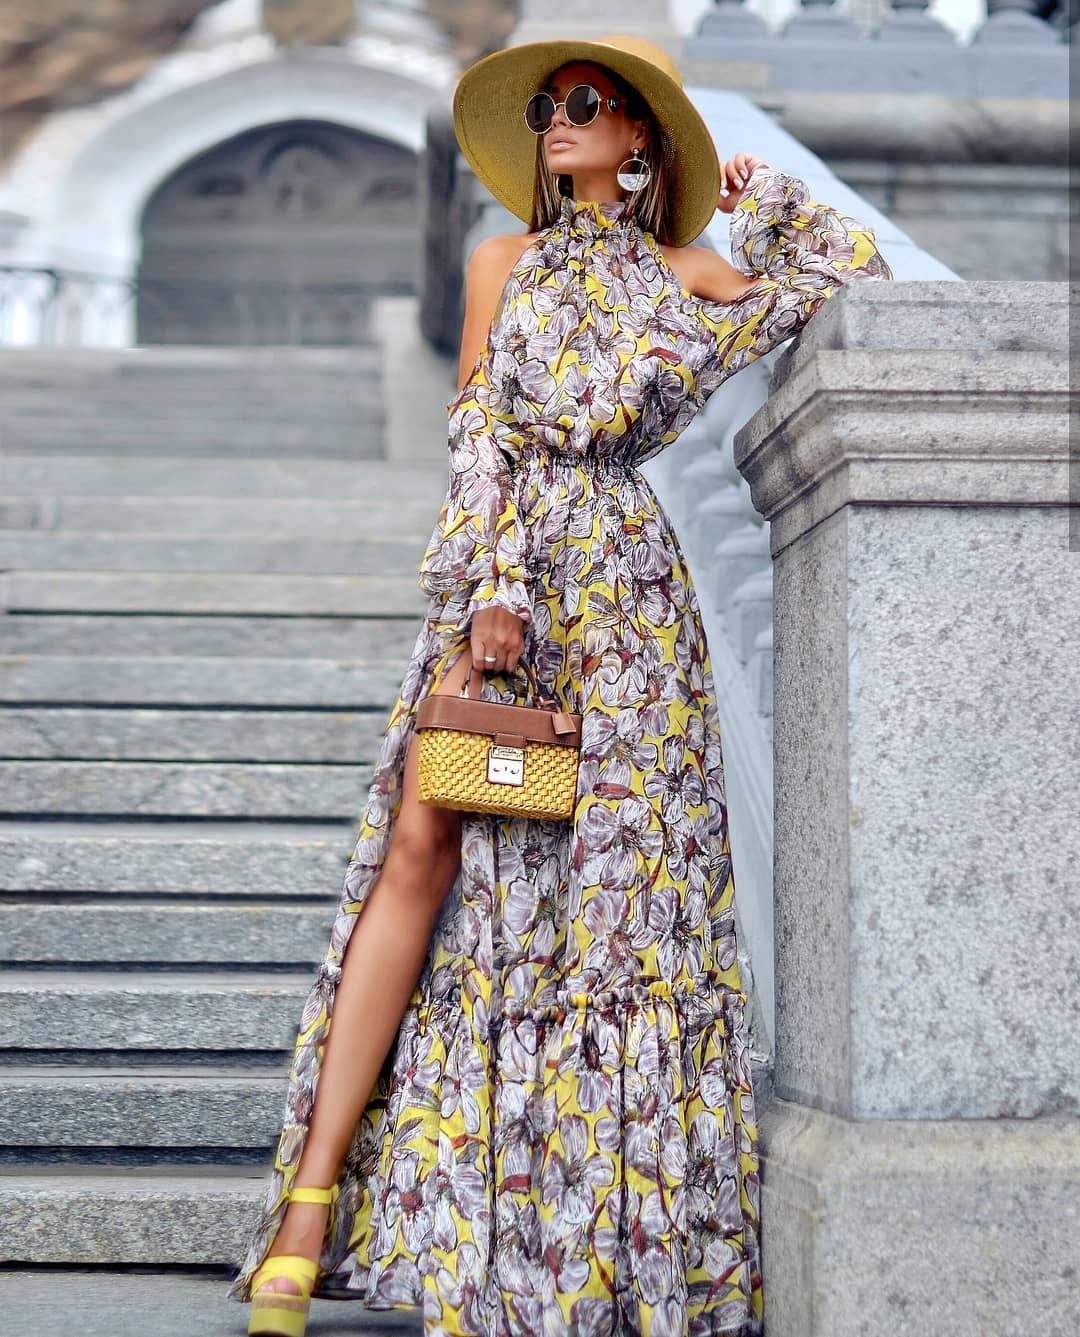 Cold Shoulder Maxi Gown In Floral Print For Summer 2019